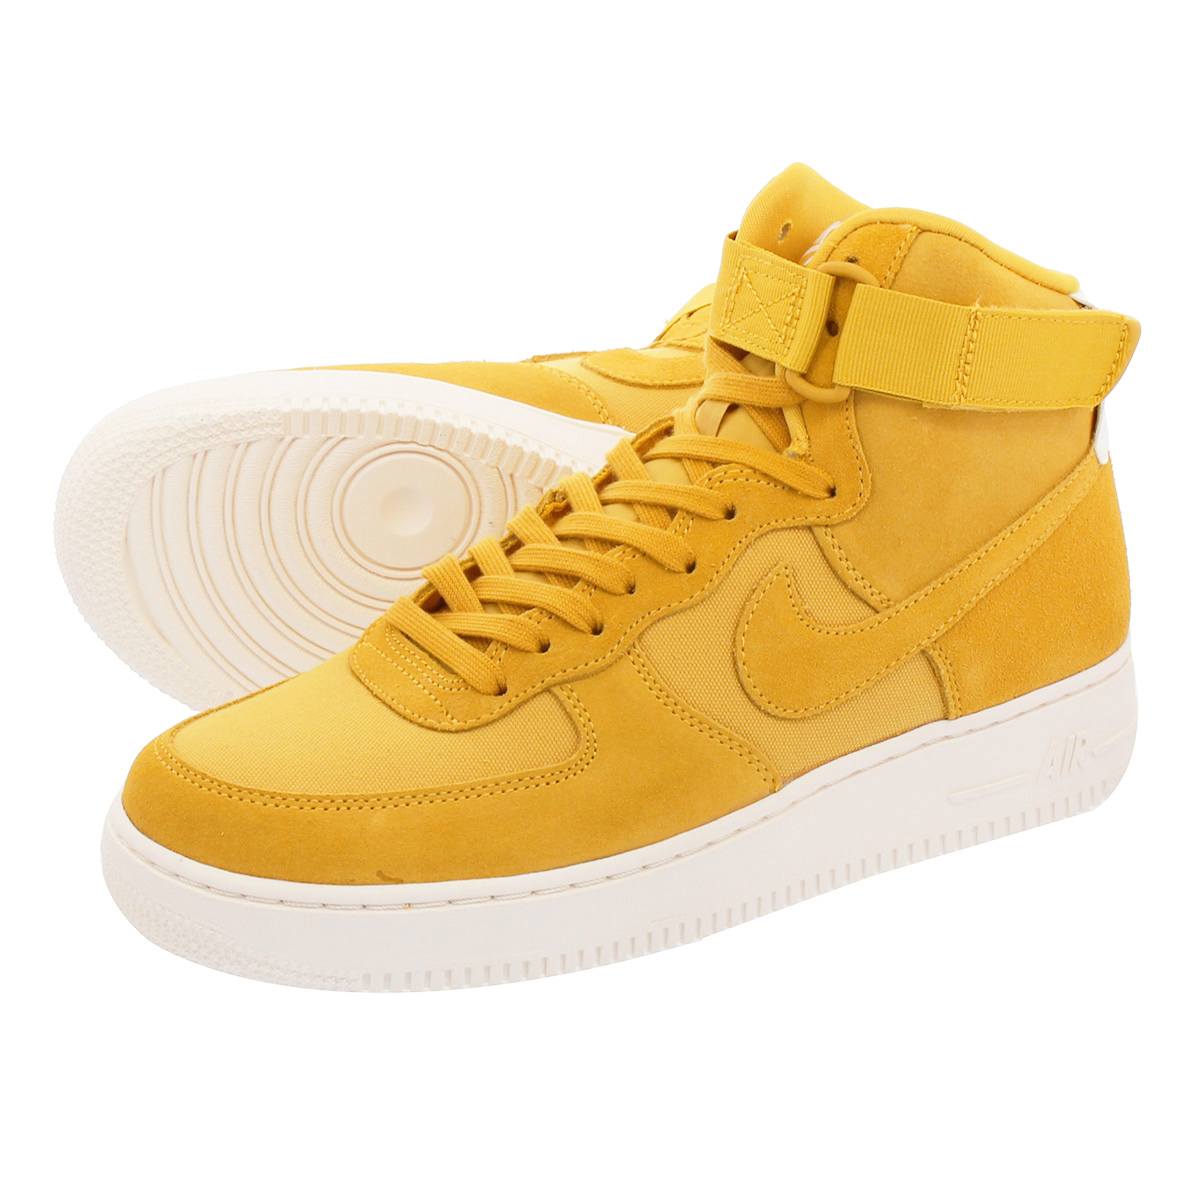 online store b2e23 176cb NIKE AIR FORCE 1 HIGH 07 SUEDE Nike air force 1 high 07 suede  YELLOW OCHRE SAIL aq8649-700